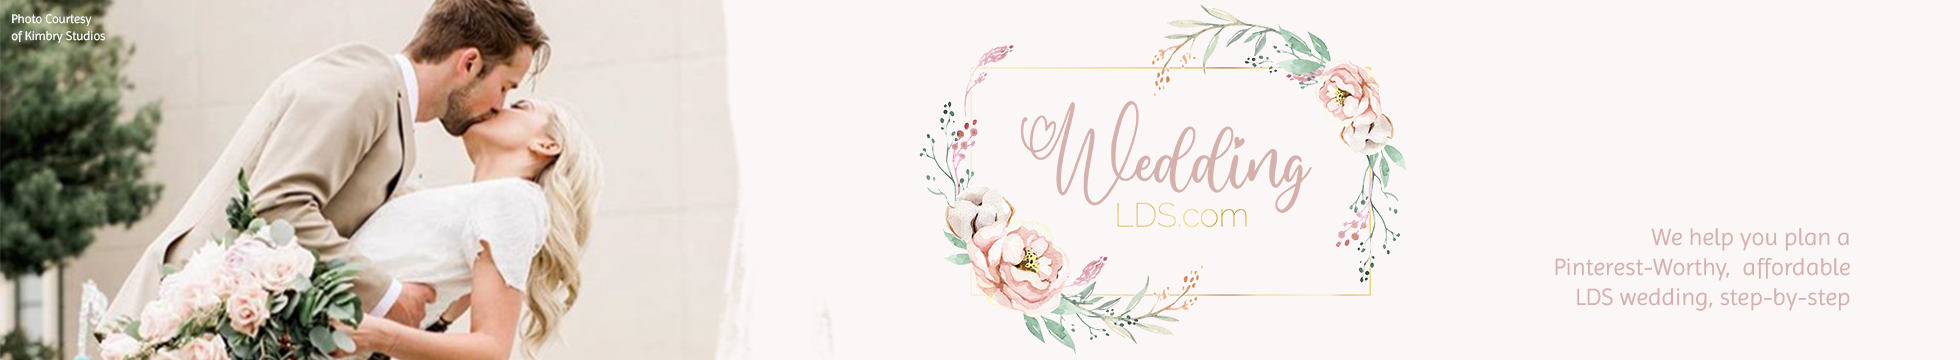 WeddingLDS We help you plan an affordable Pinterest-Worthy LDS wedding